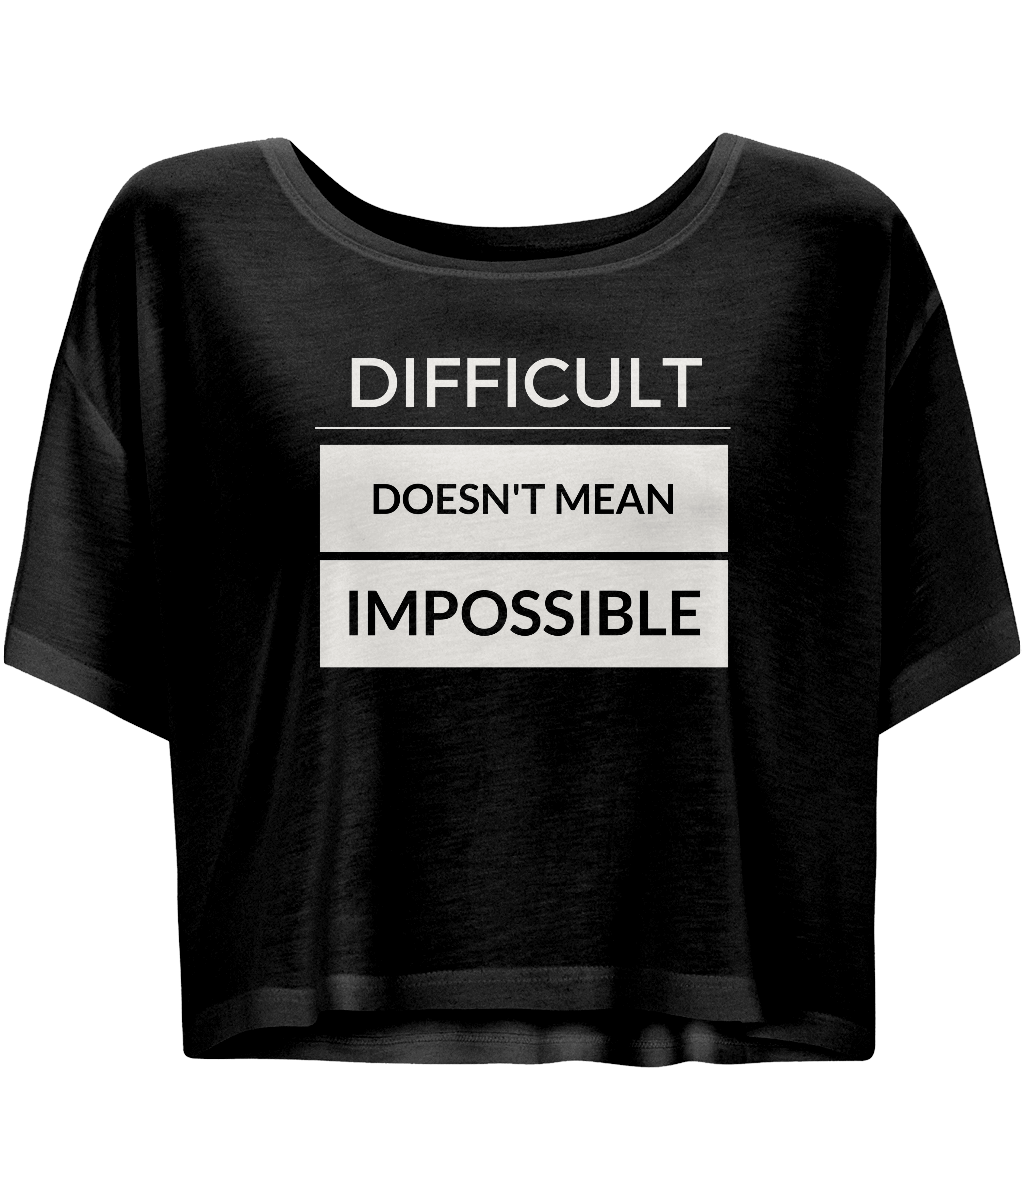 Difficult doesnt mean impossible - Flowy Boxy